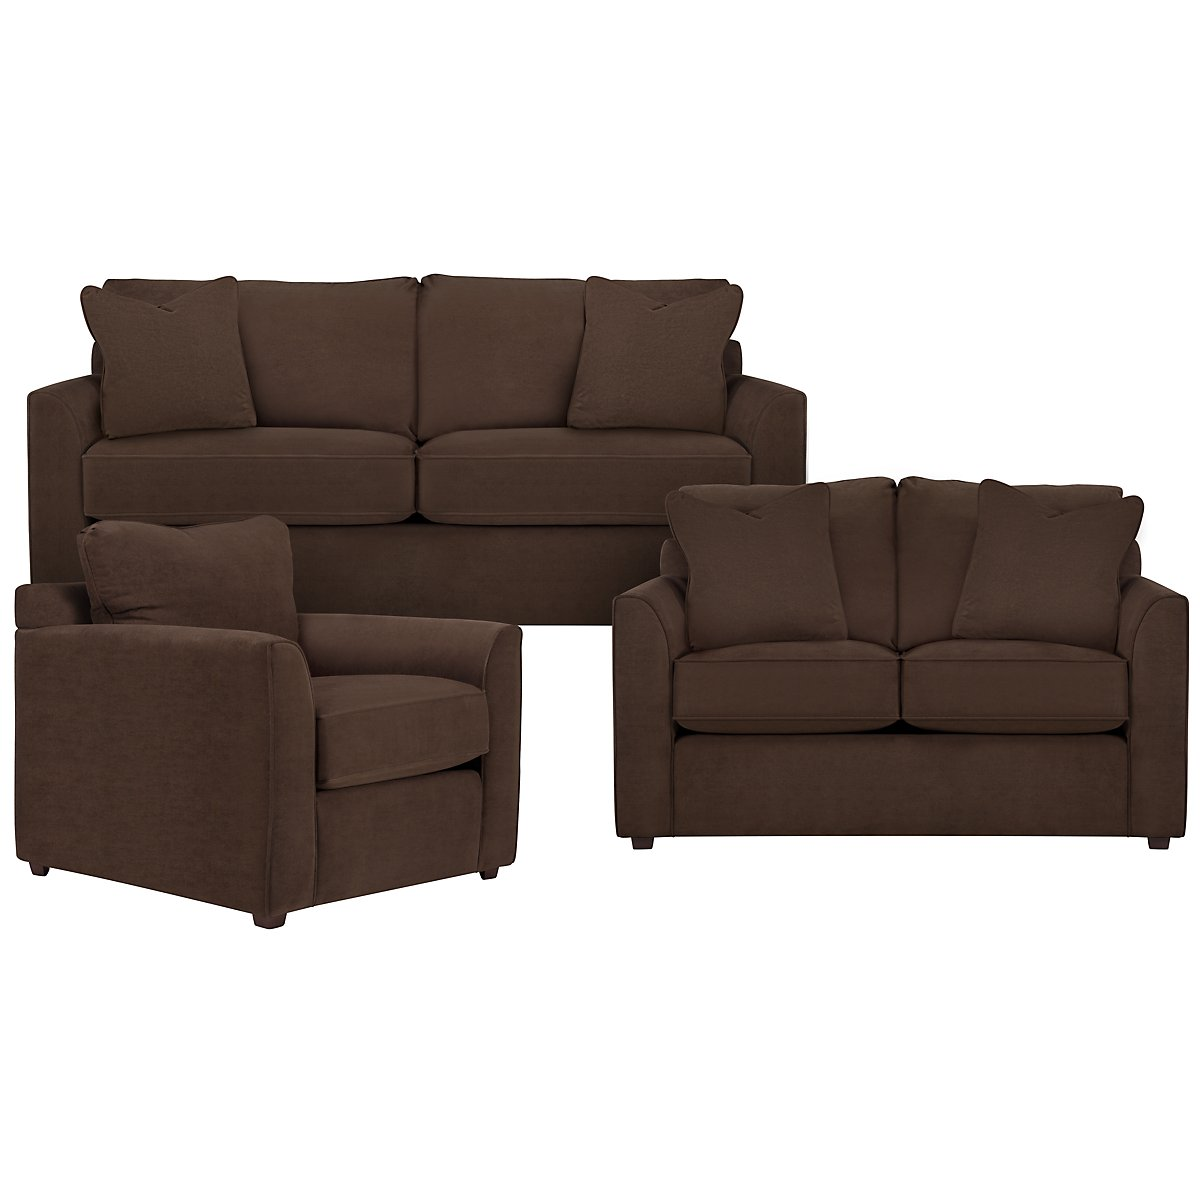 Express3 Dark Brown Microfiber Living Room